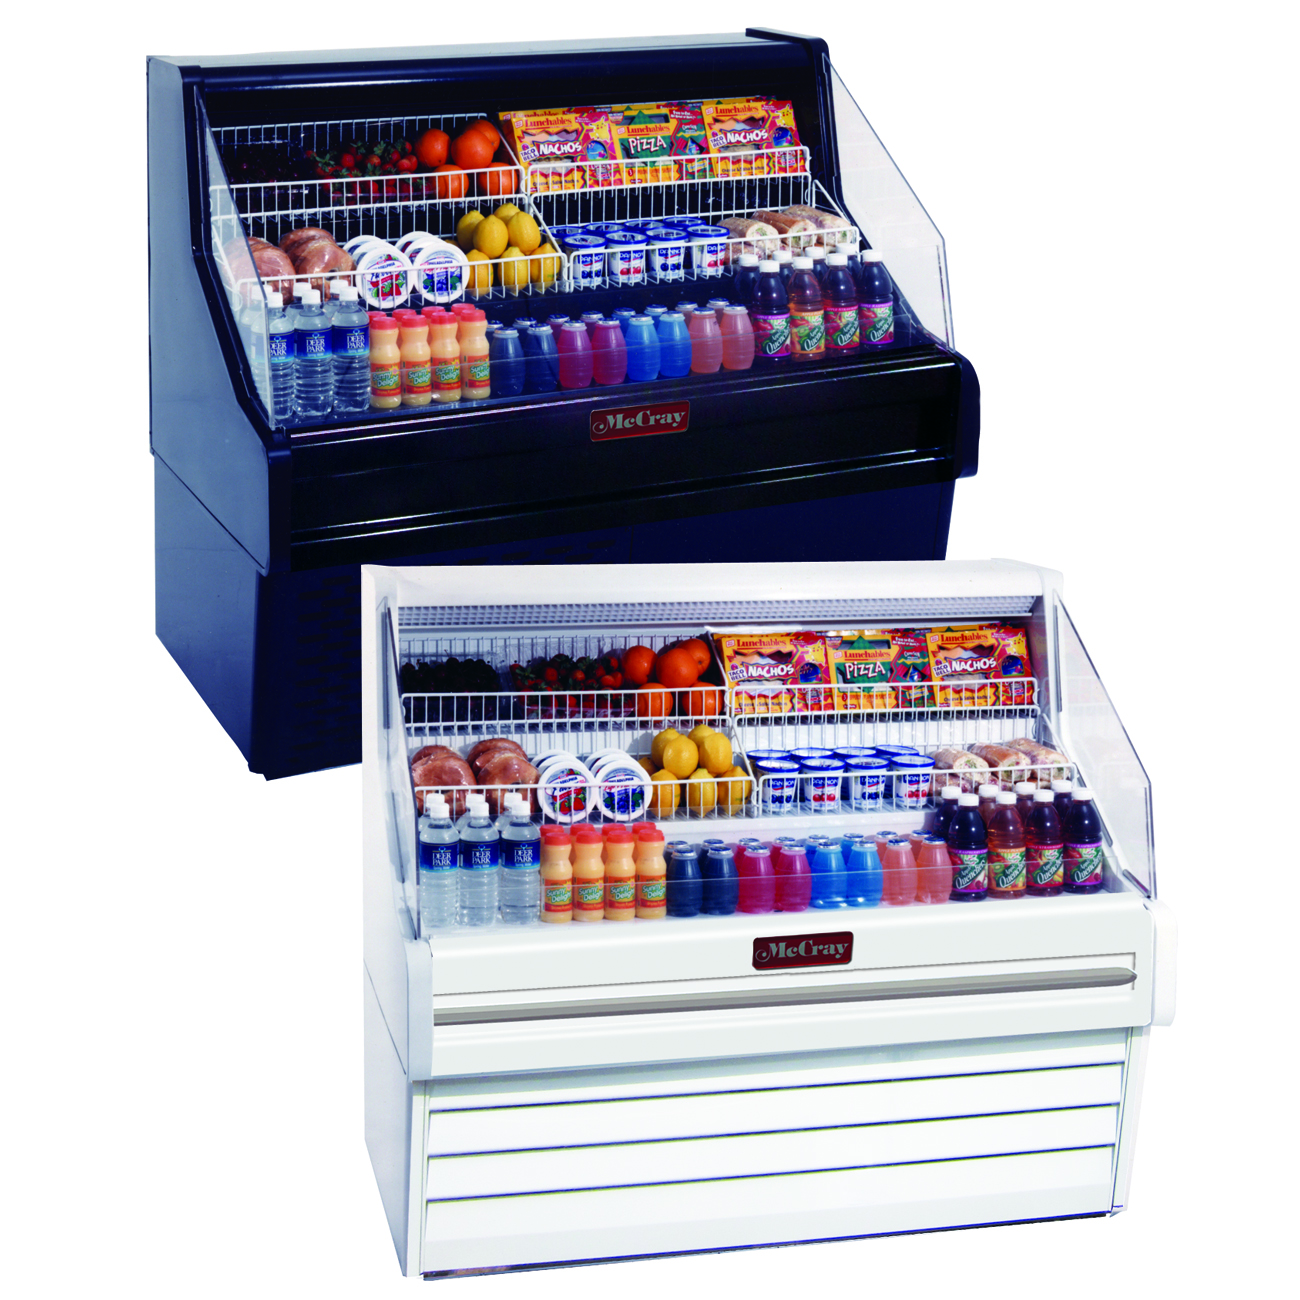 Howard-McCray R-OS30E-6-B-LED merchandiser, open refrigerated display